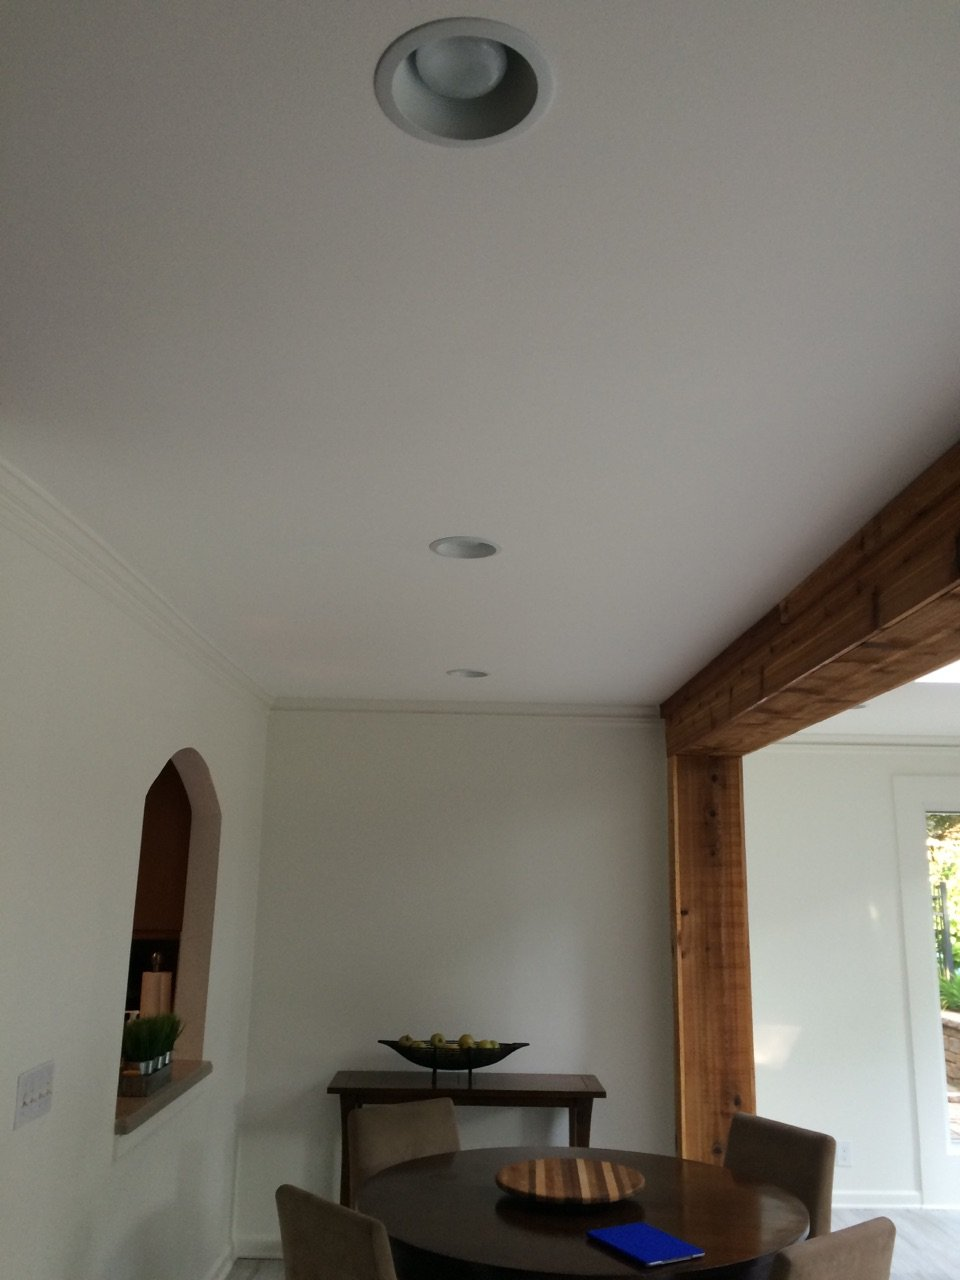 Canned Lighting Installation